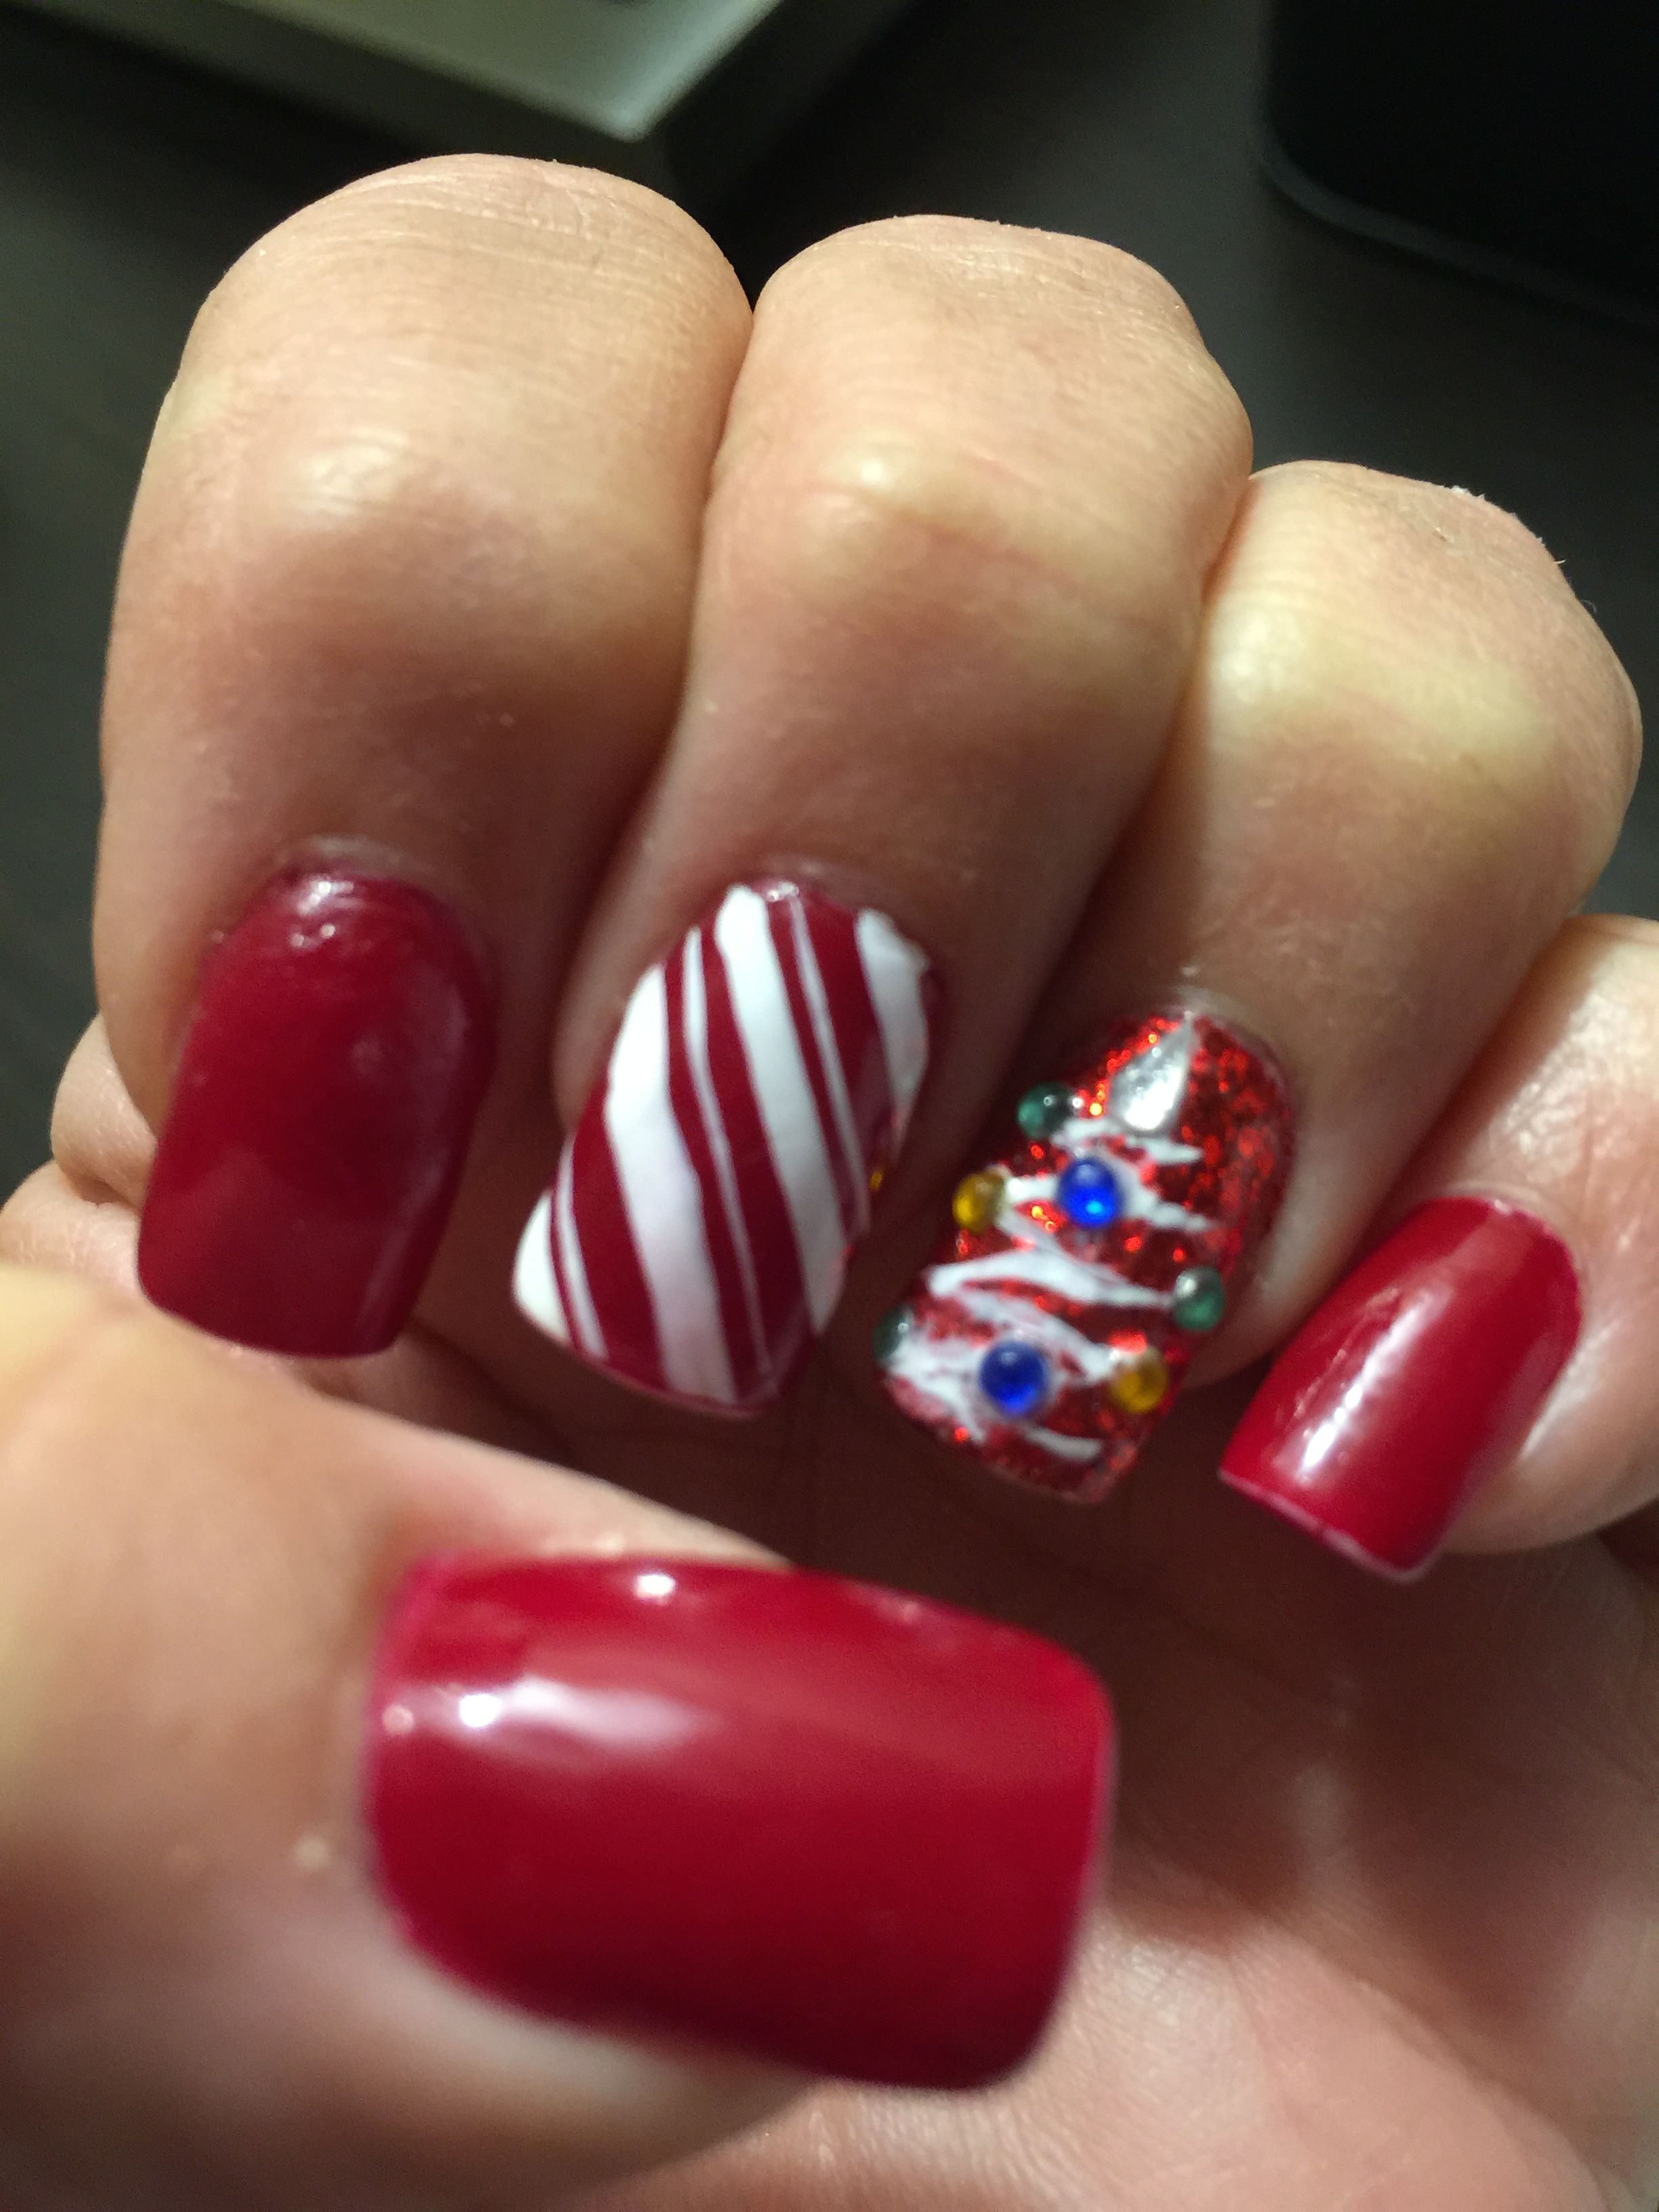 Merry Christmas Jolly Nail Art Fun Beachy Nails And Holidays Too